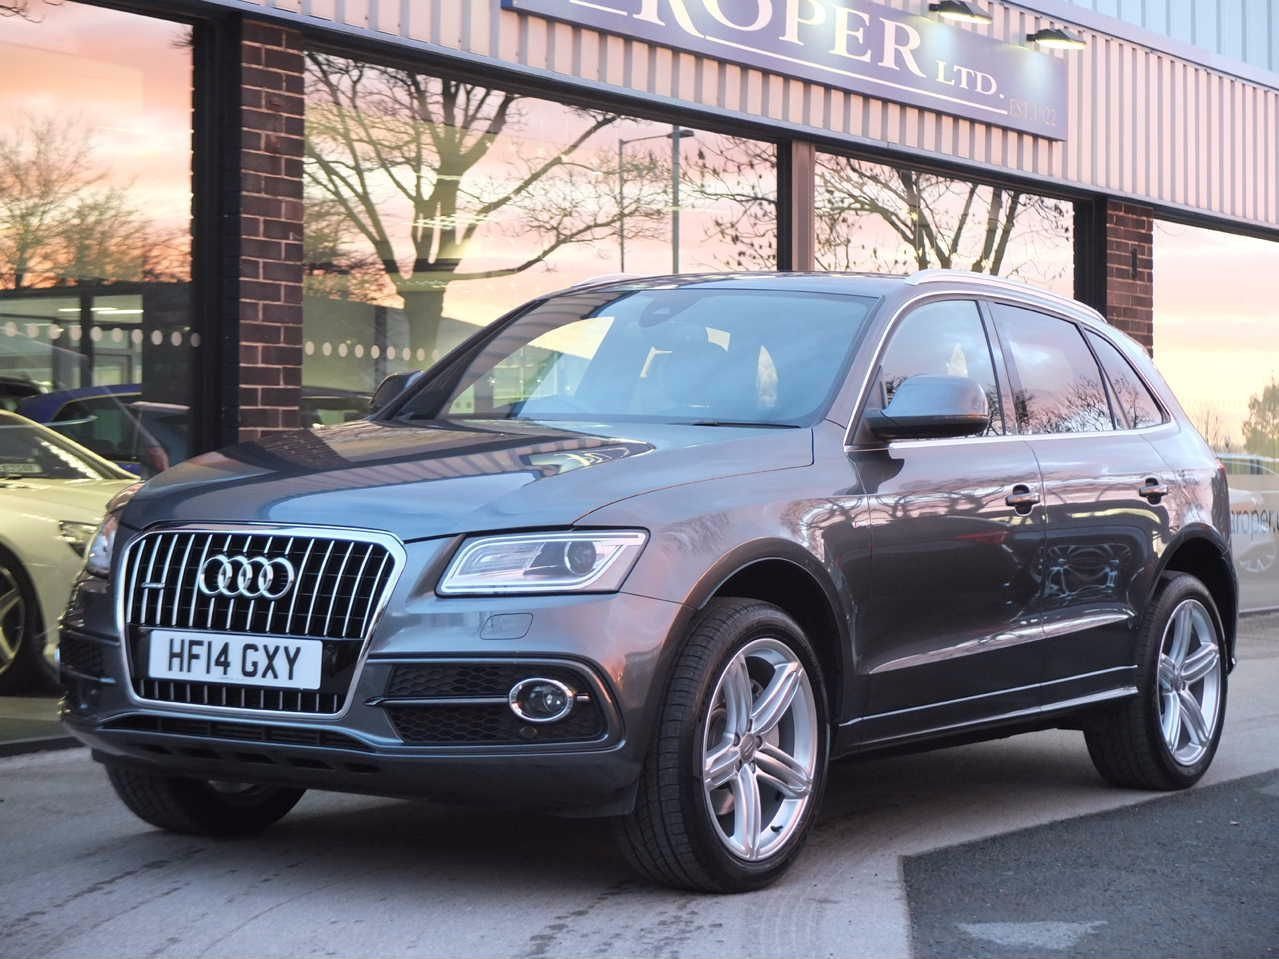 Audi Q5 3.0 TDI quattro S Line Plus S Tronic Estate Diesel Daytona Grey MetallicAudi Q5 3.0 TDI quattro S Line Plus S Tronic Estate Diesel Daytona Grey Metallic at fa Roper Ltd Bradford